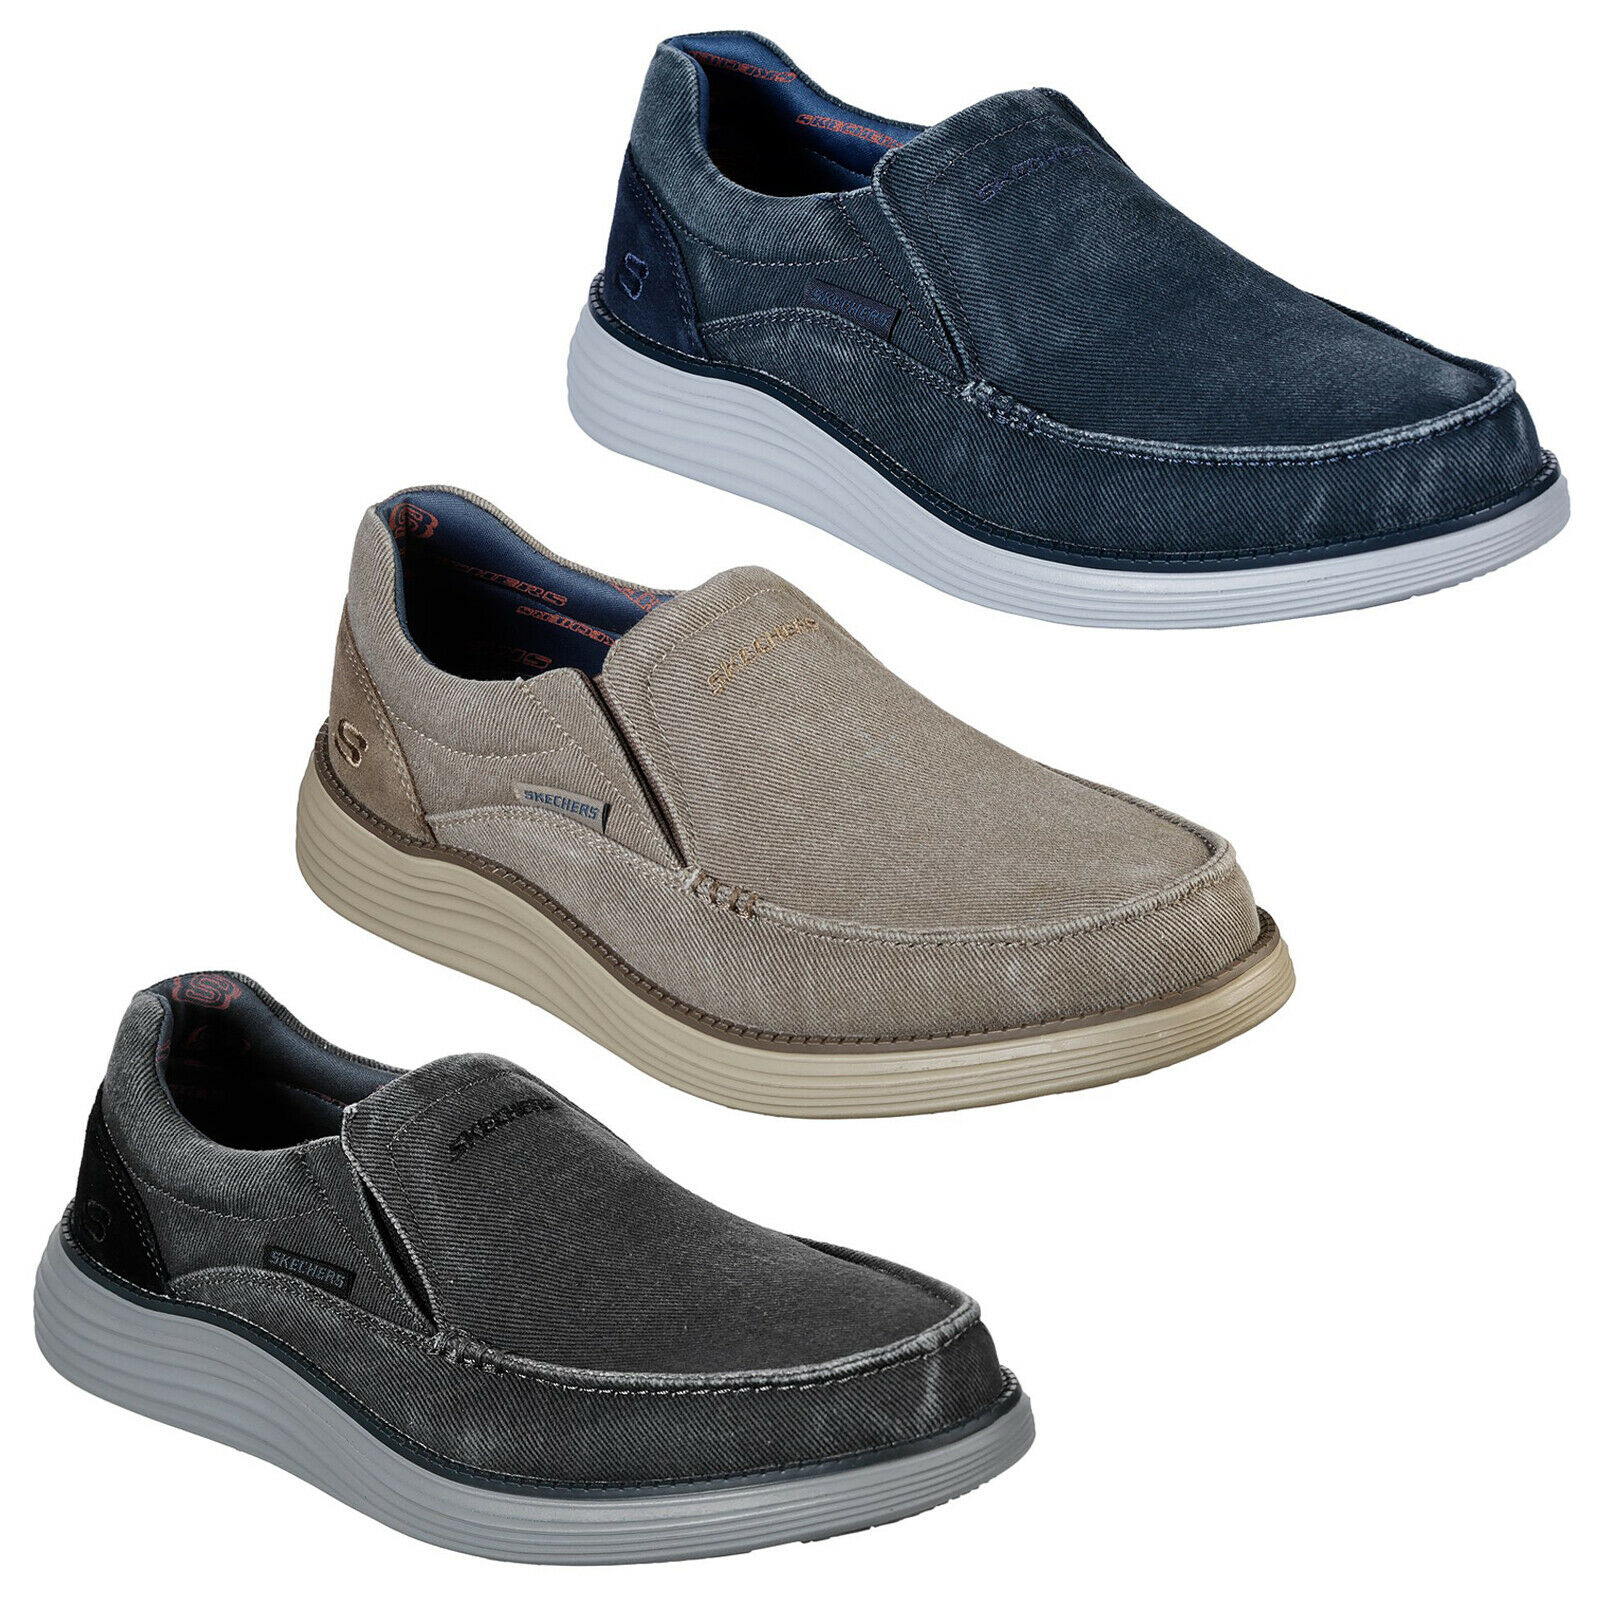 Skechers status 2.0 - mosent deportes 66014 patines para hombres